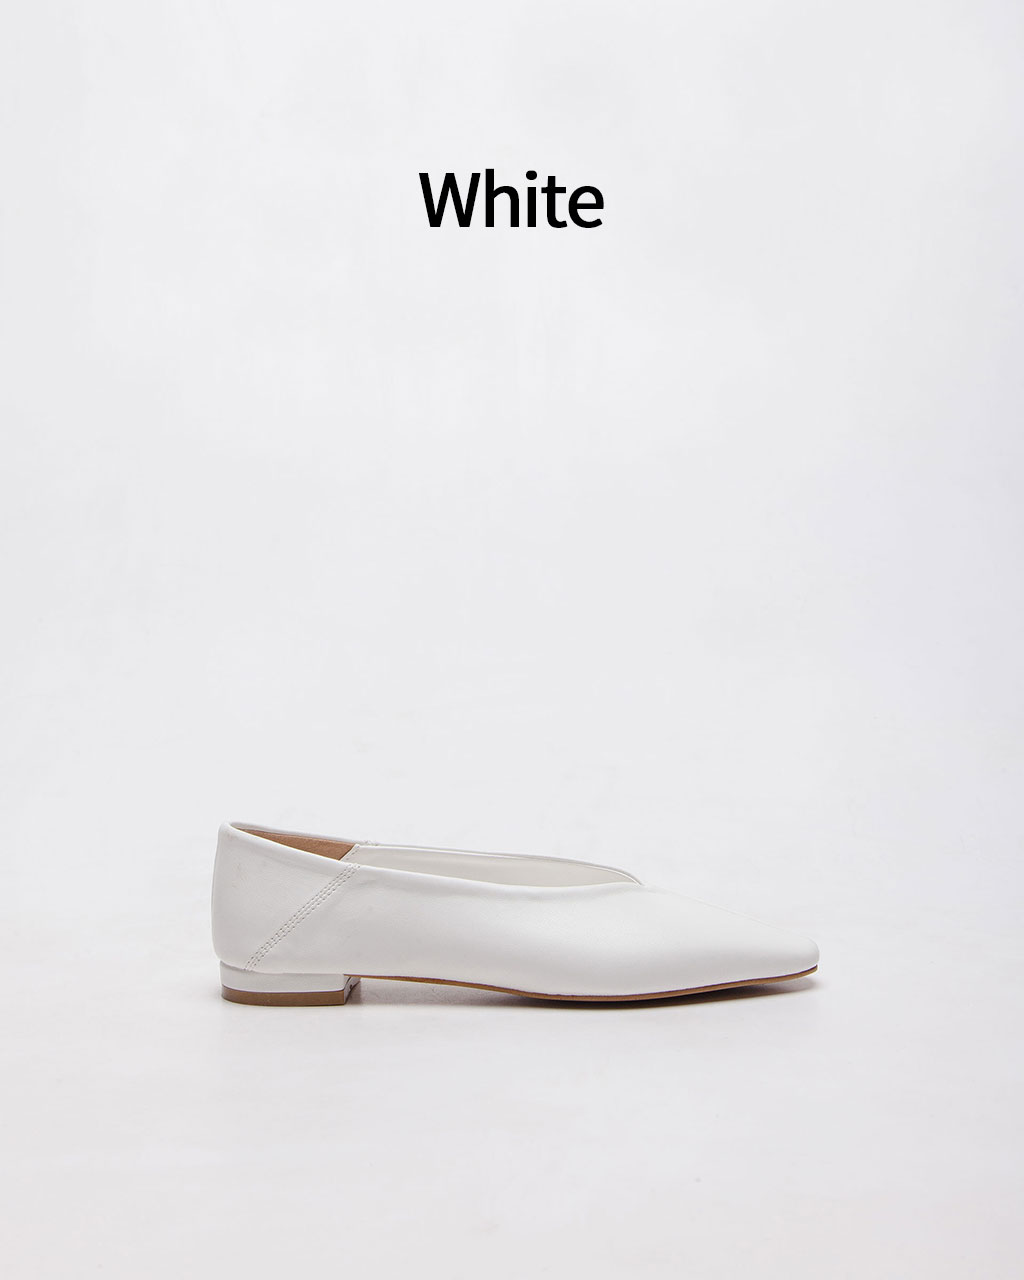 Tagtraume Clever-07 - White(화이트)